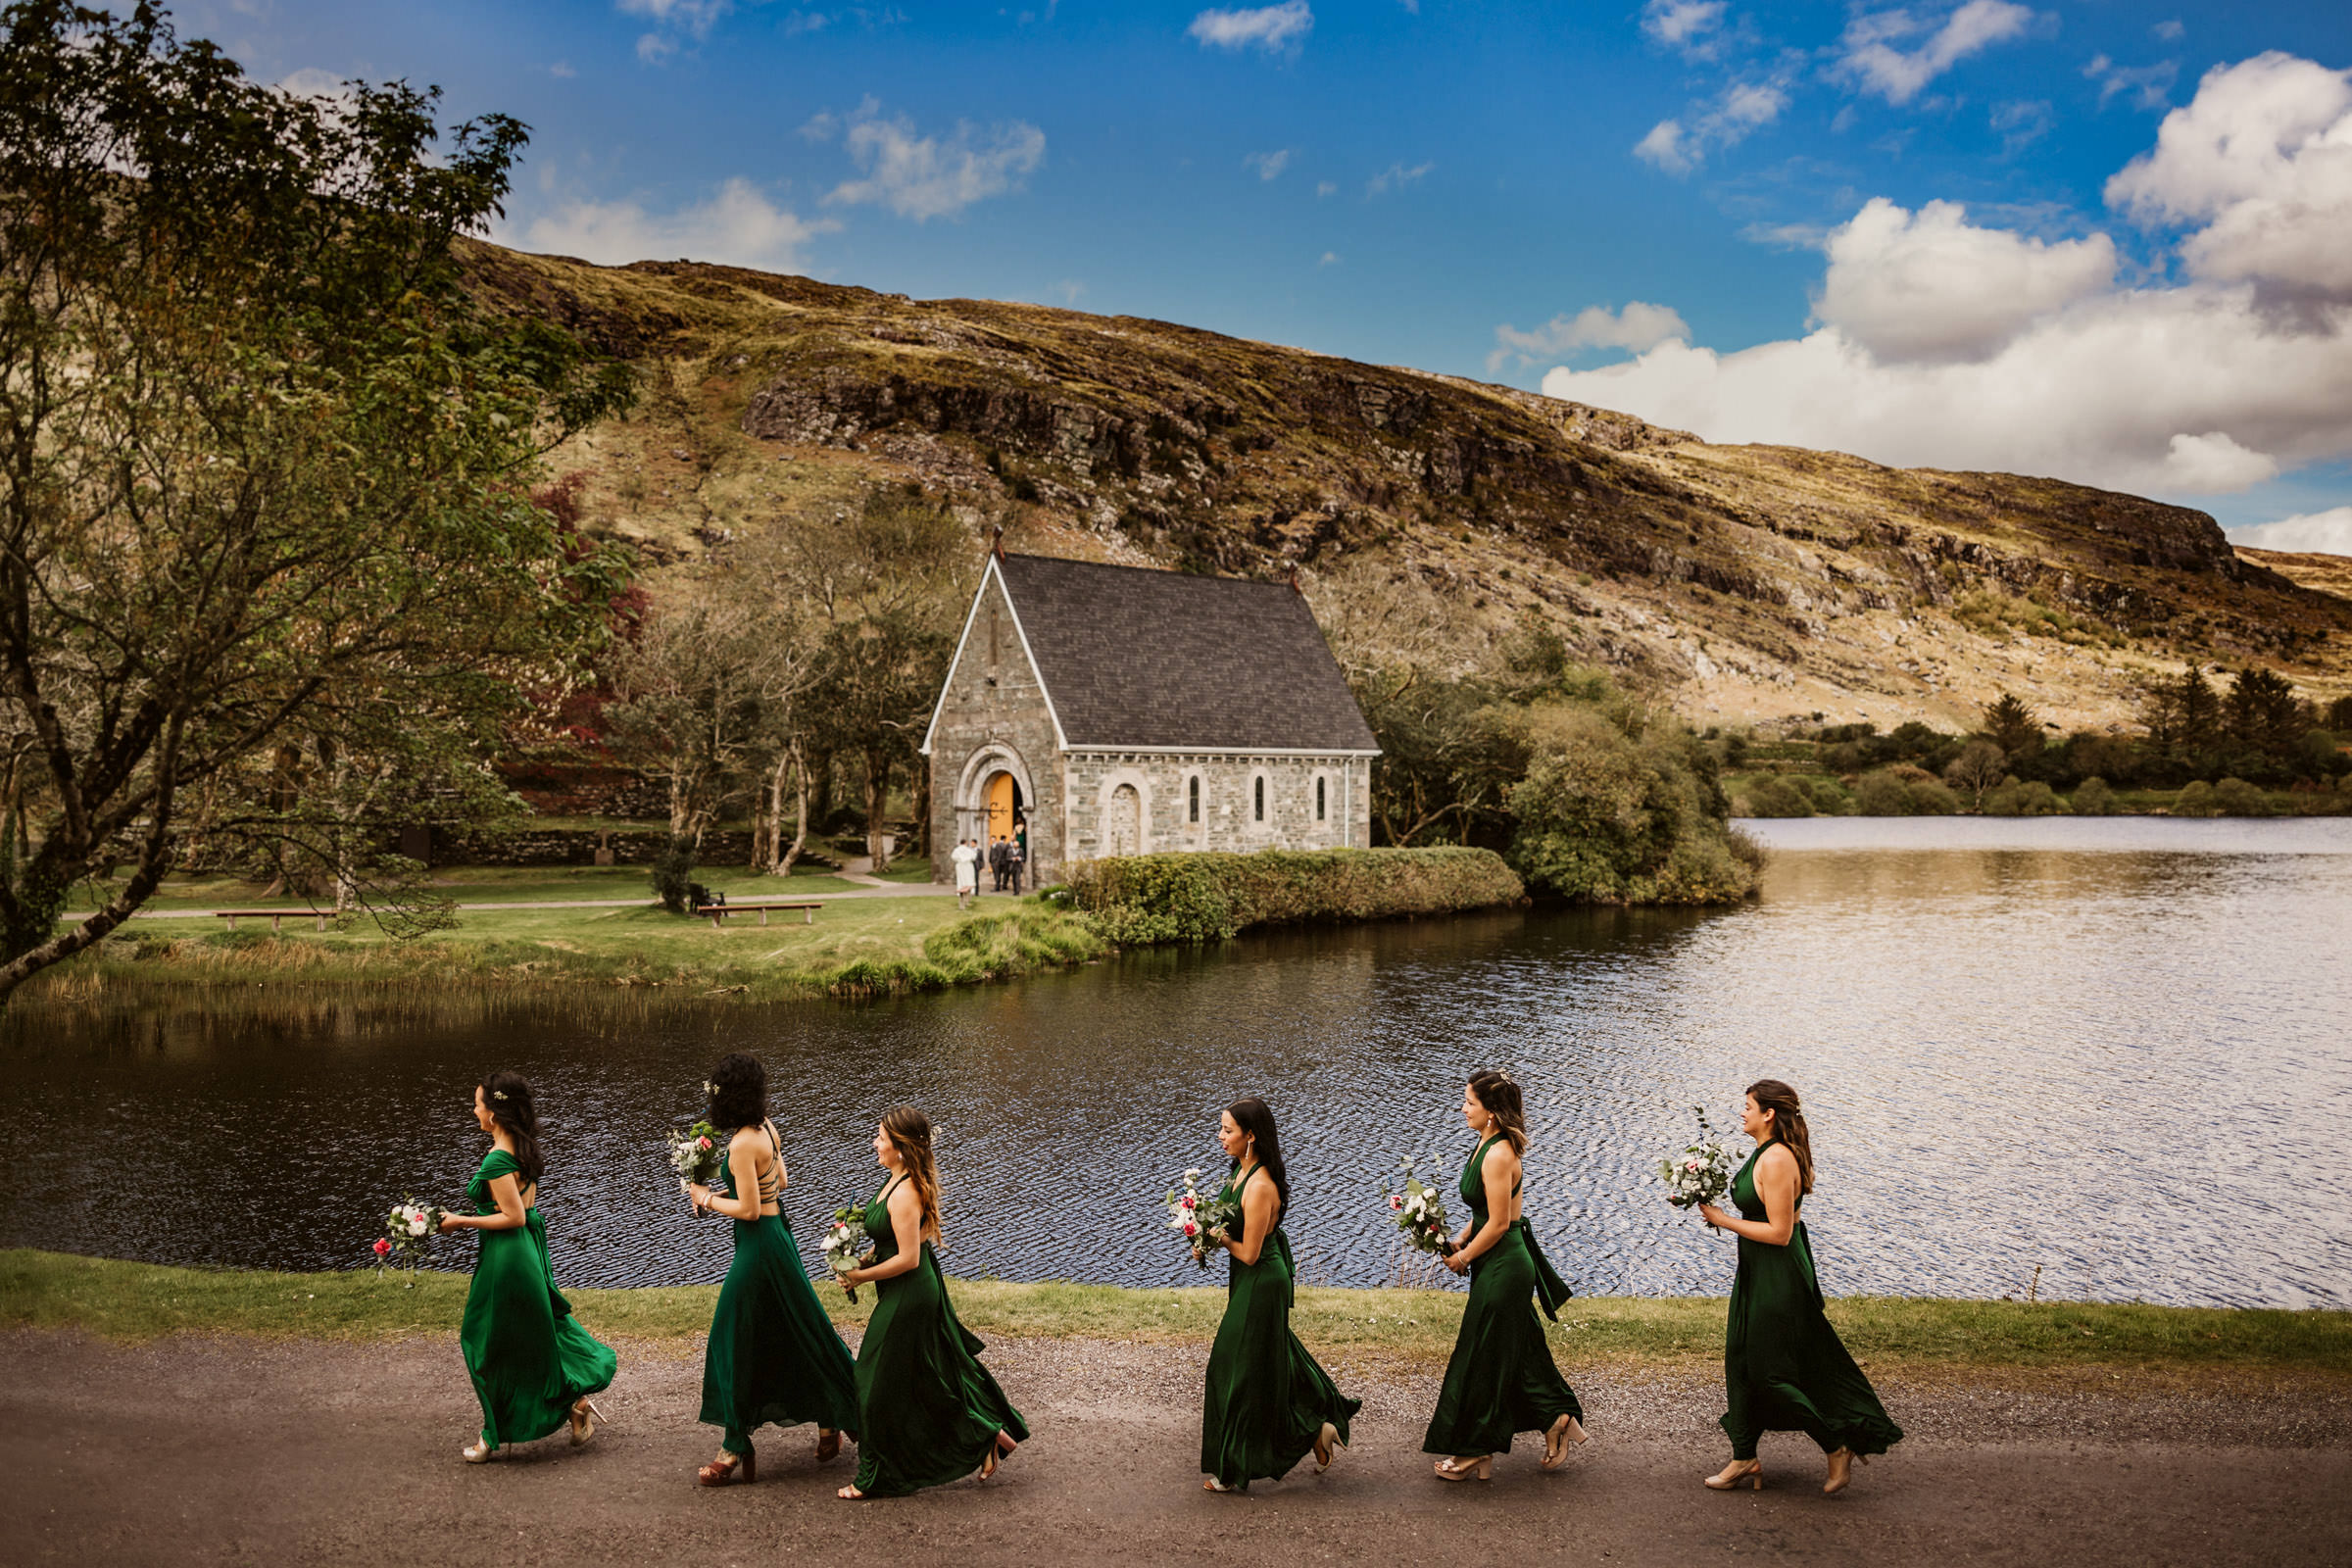 Bridesmaid head to church in flowing emerald green dresses - photographed by Lima Conlon - Ireland